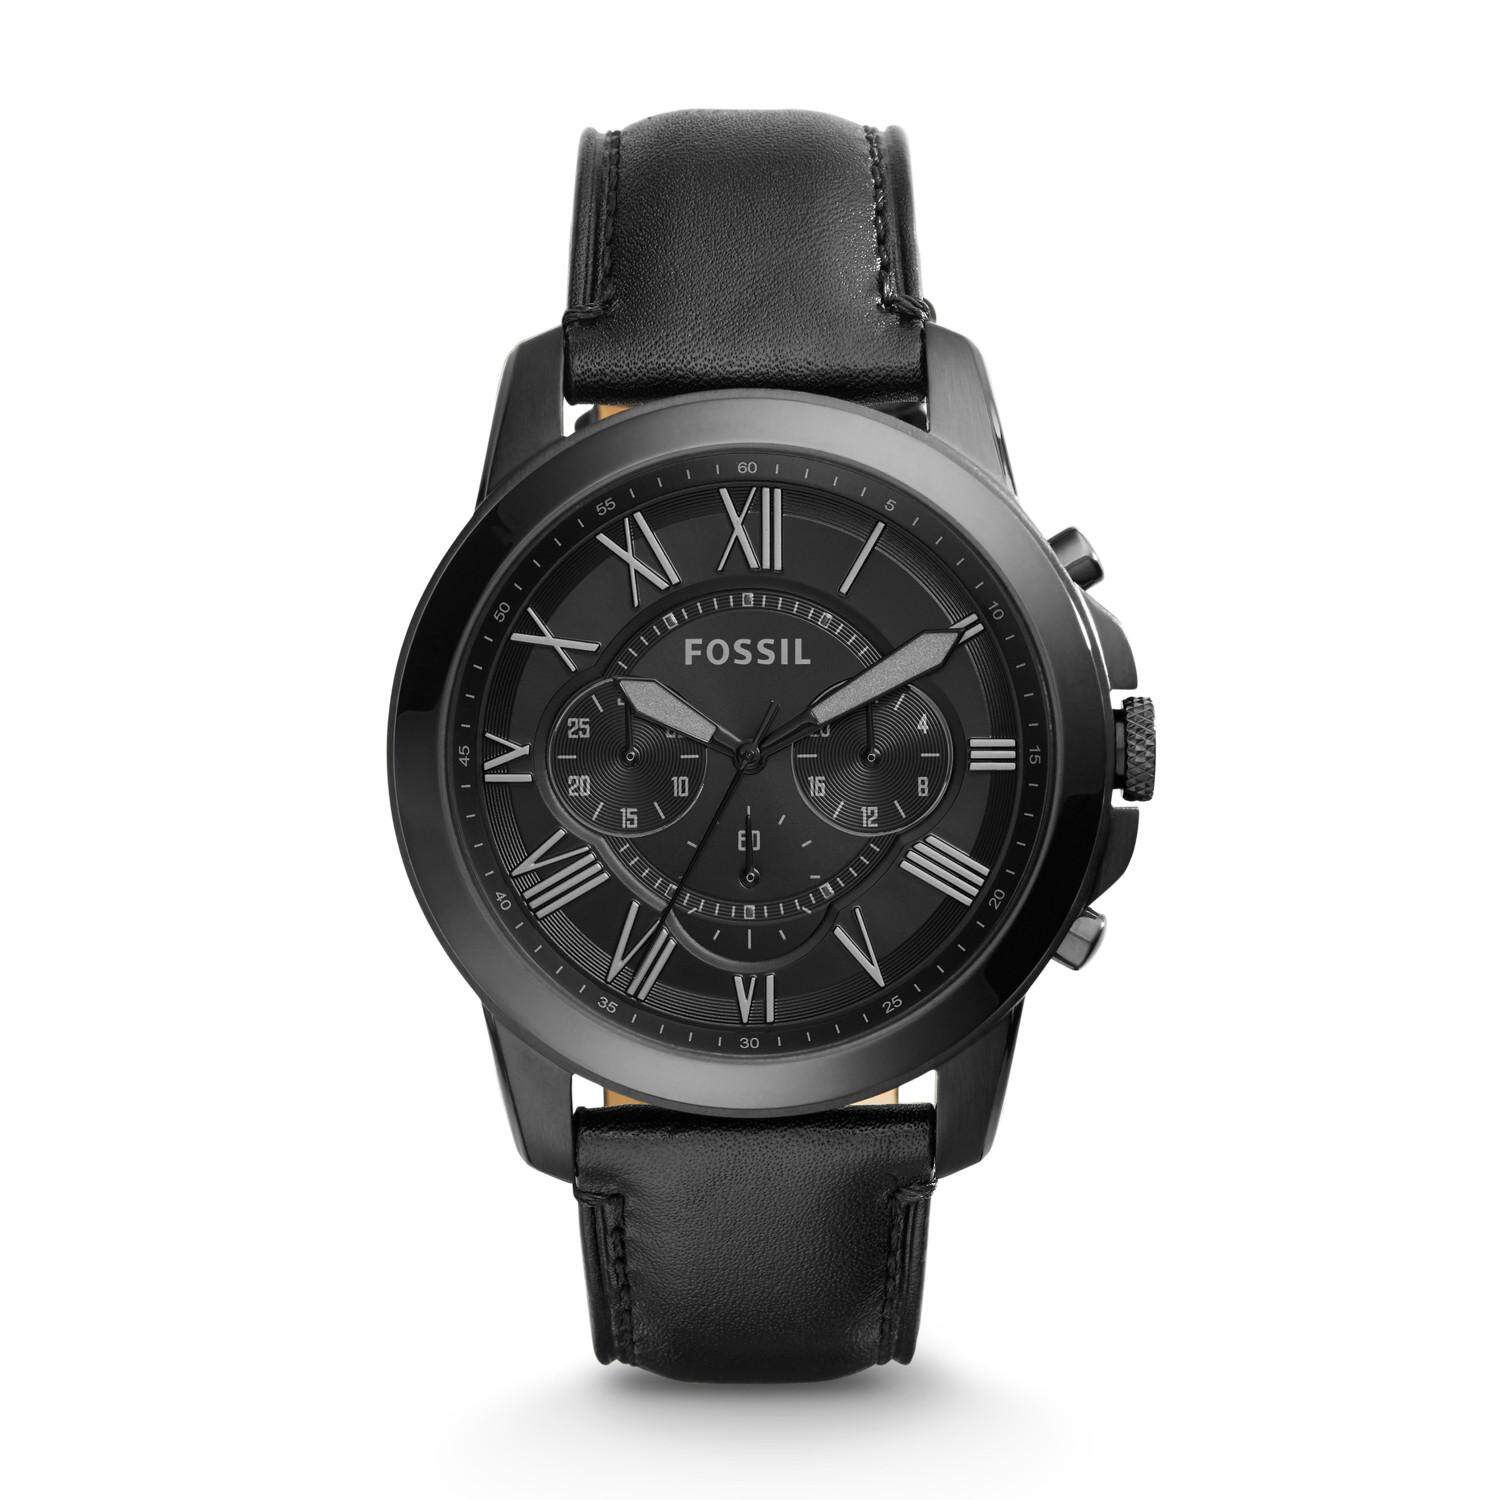 Fossil FS440 Original Chronograph Design Black Leather Malaysia